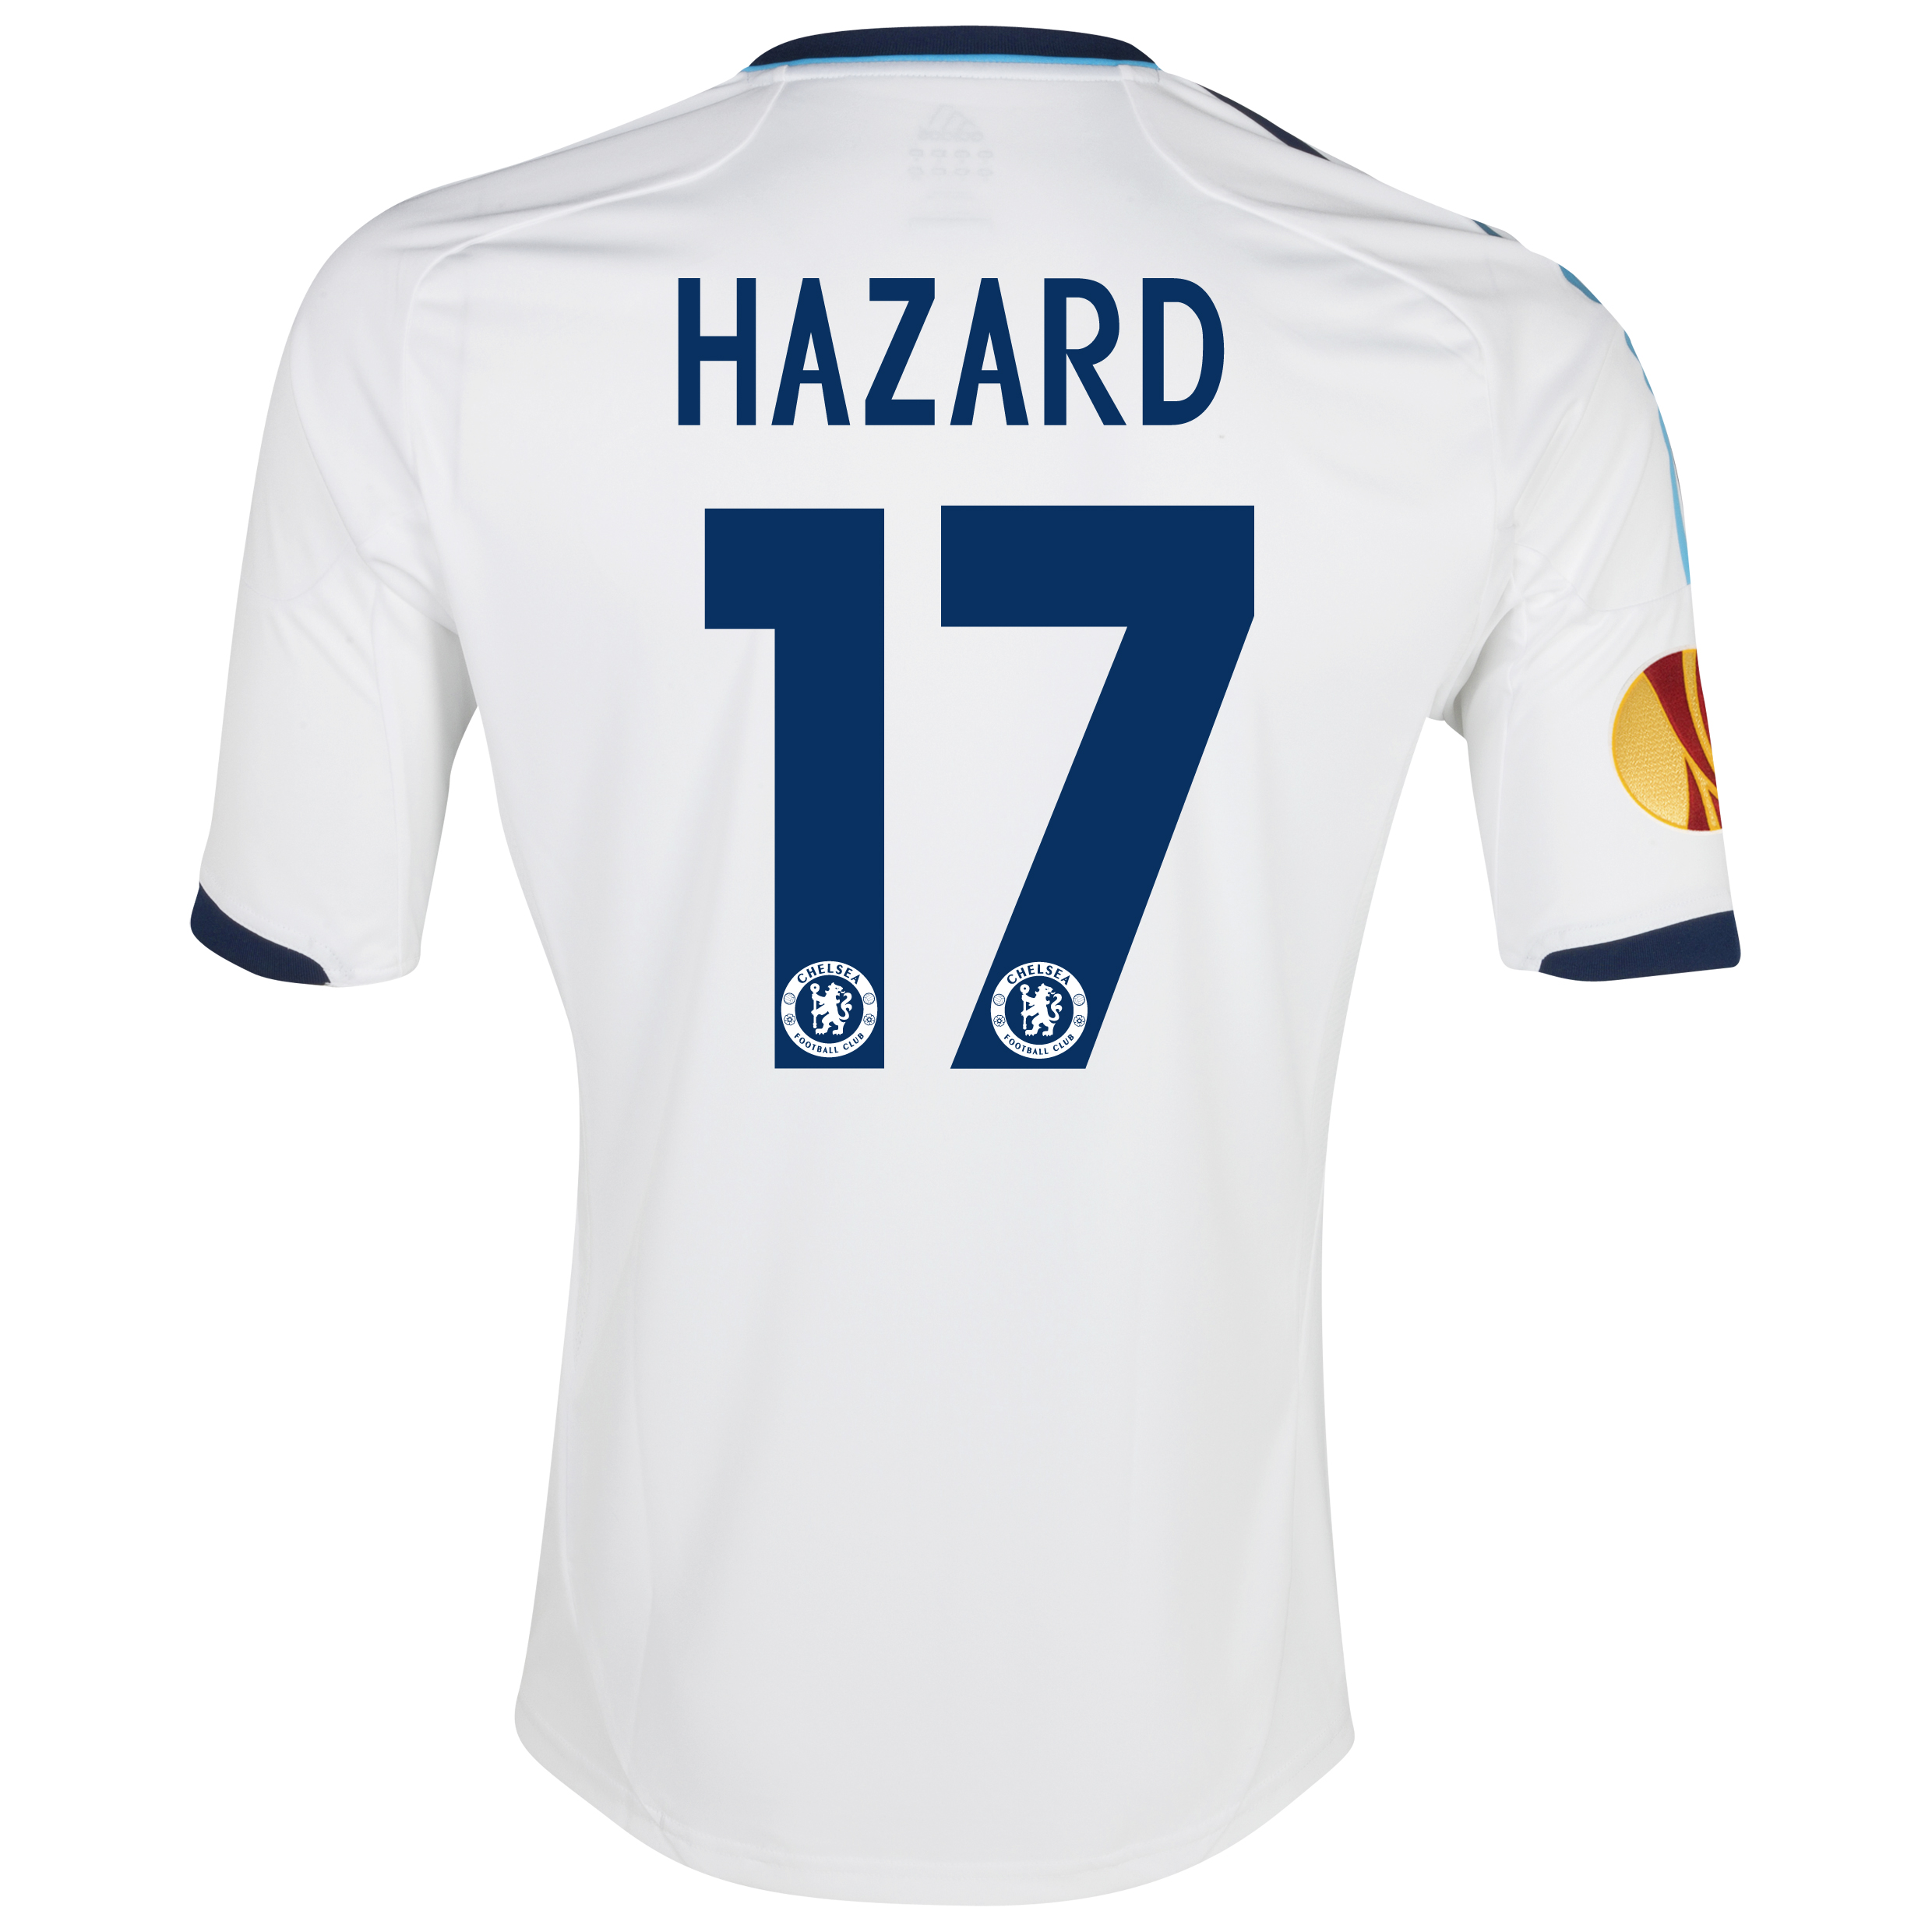 Chelsea UEFA Europa League Away Shirt 2012/13 with Hazard 17 printing Including Europa Badge